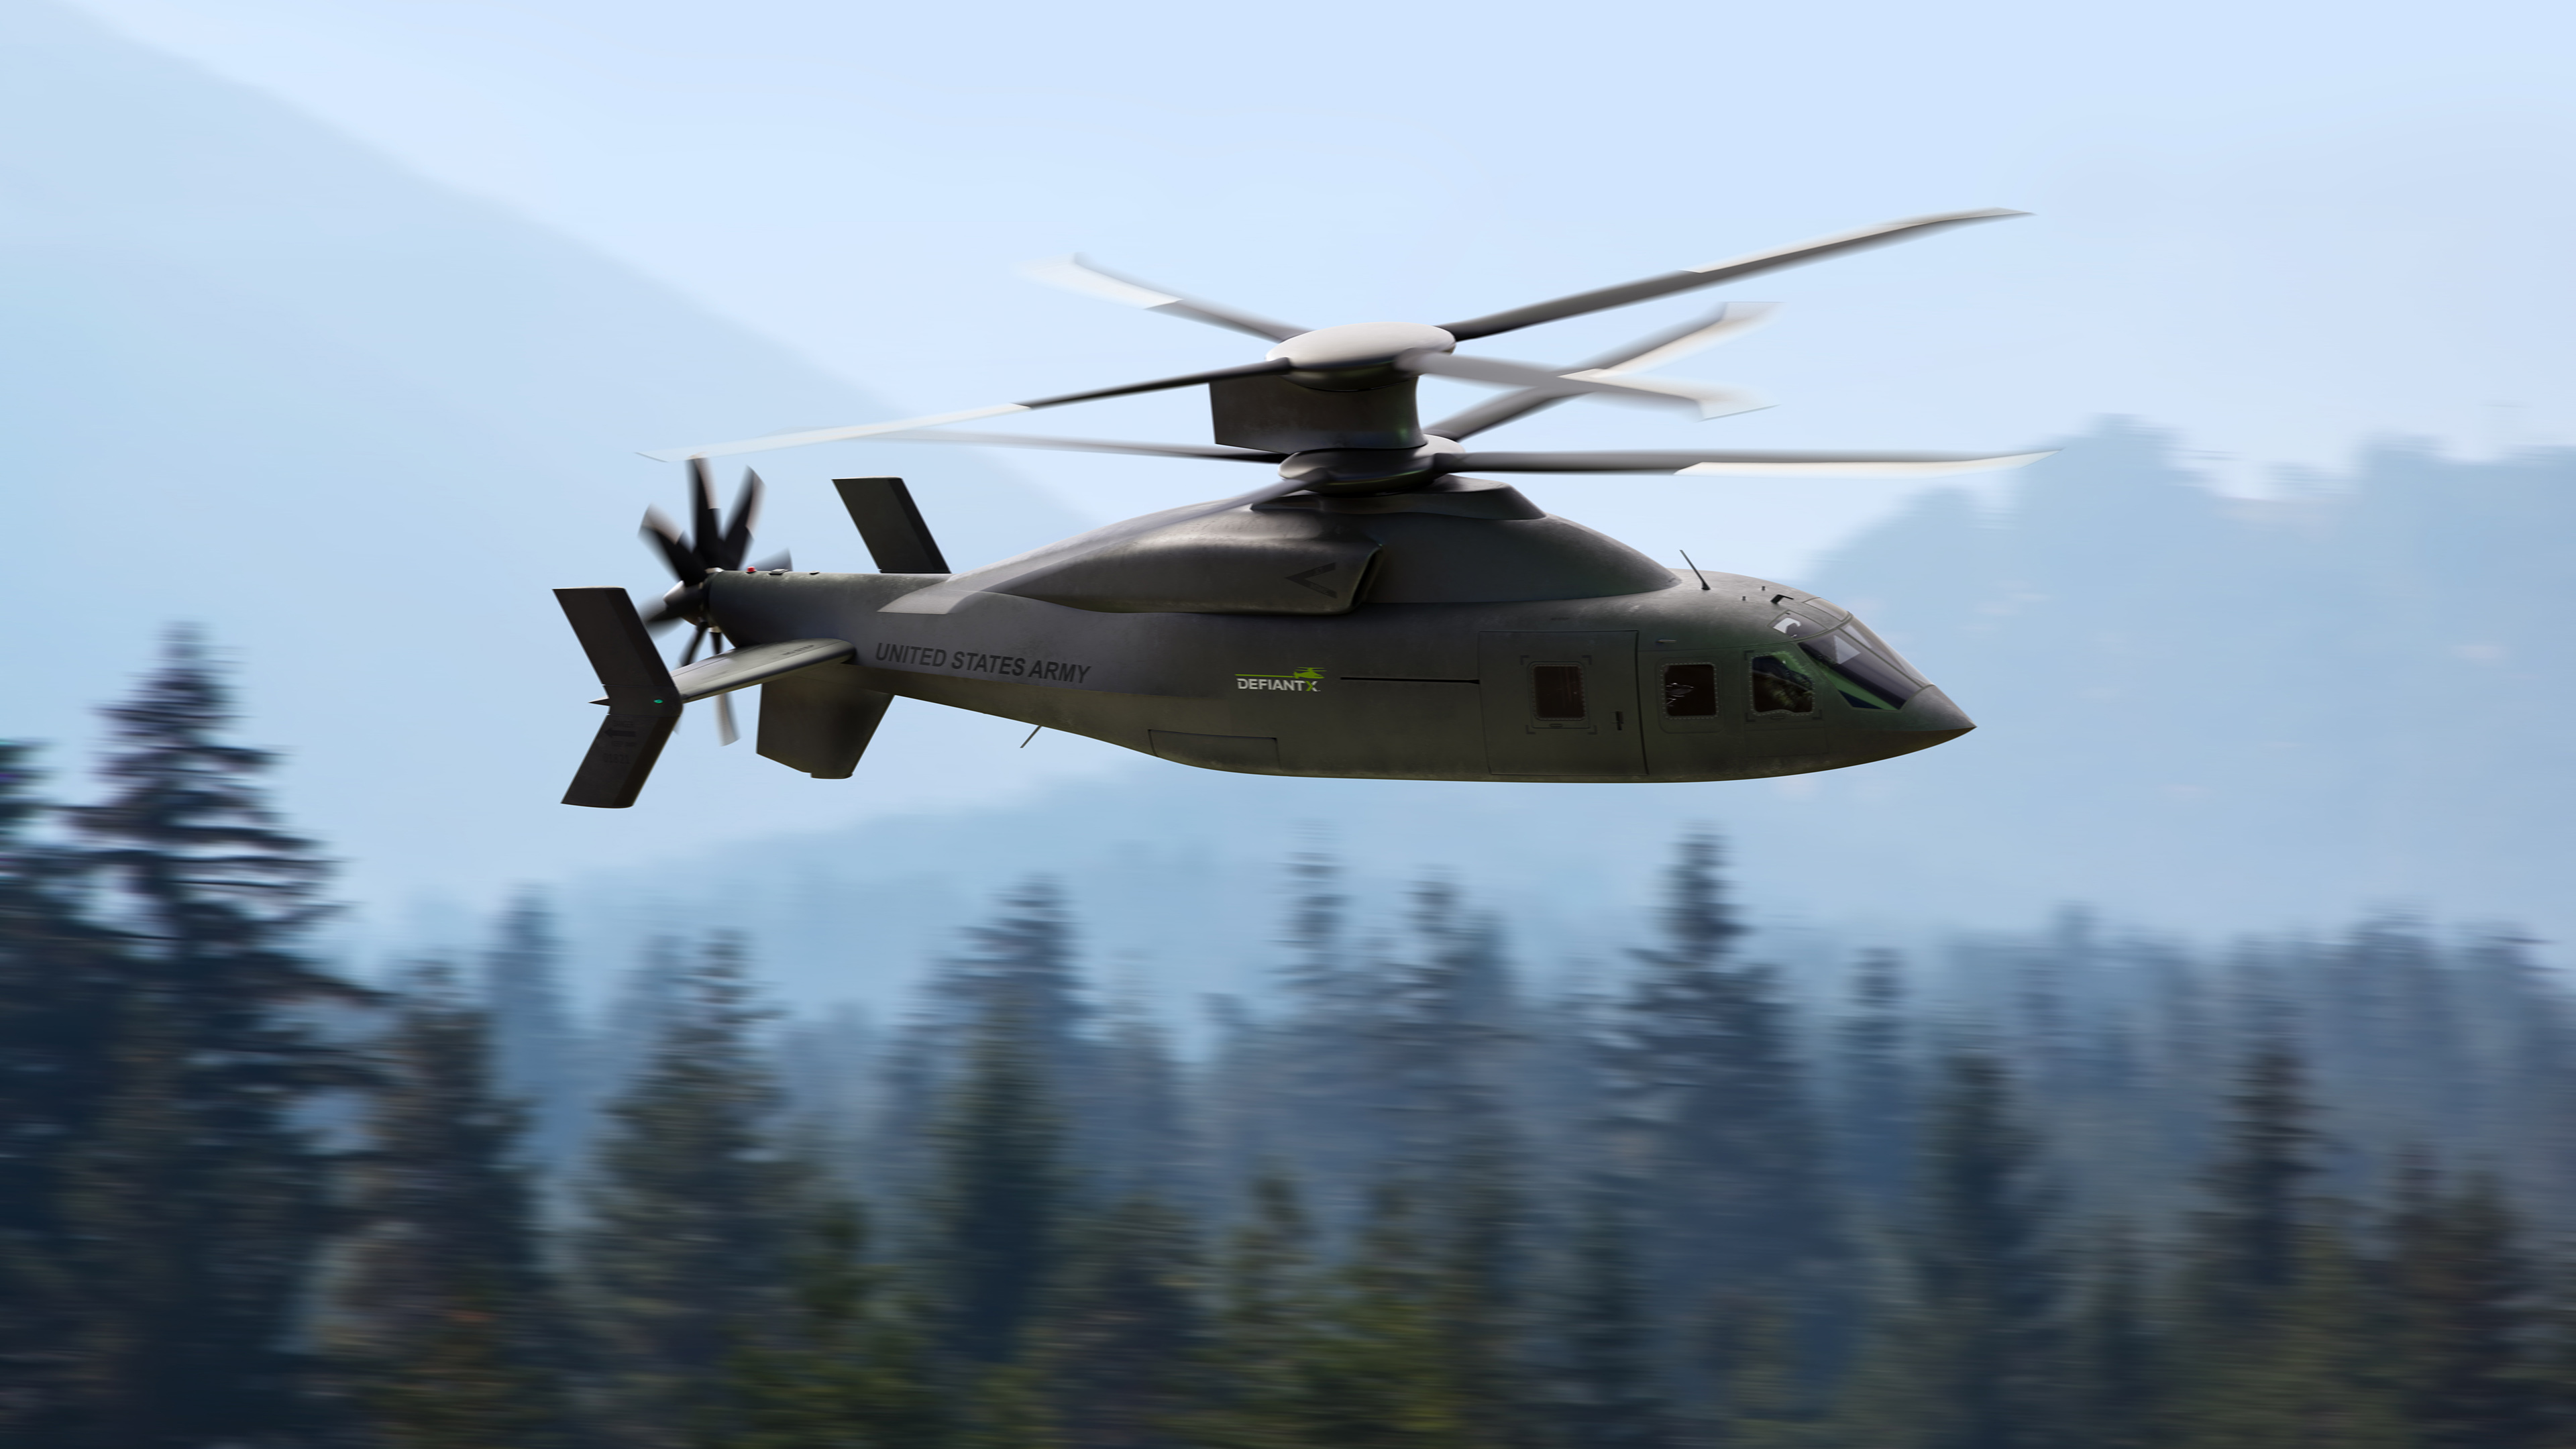 Lockheed Martin and Boeing unveiled its offering to the U.S. Army's Future Long-Range Assault Aircraft competition Jan. 25, 2021 -- calling it Defiant X. (Artistic rendering courtesy of Lockheed Martin and Boeing)